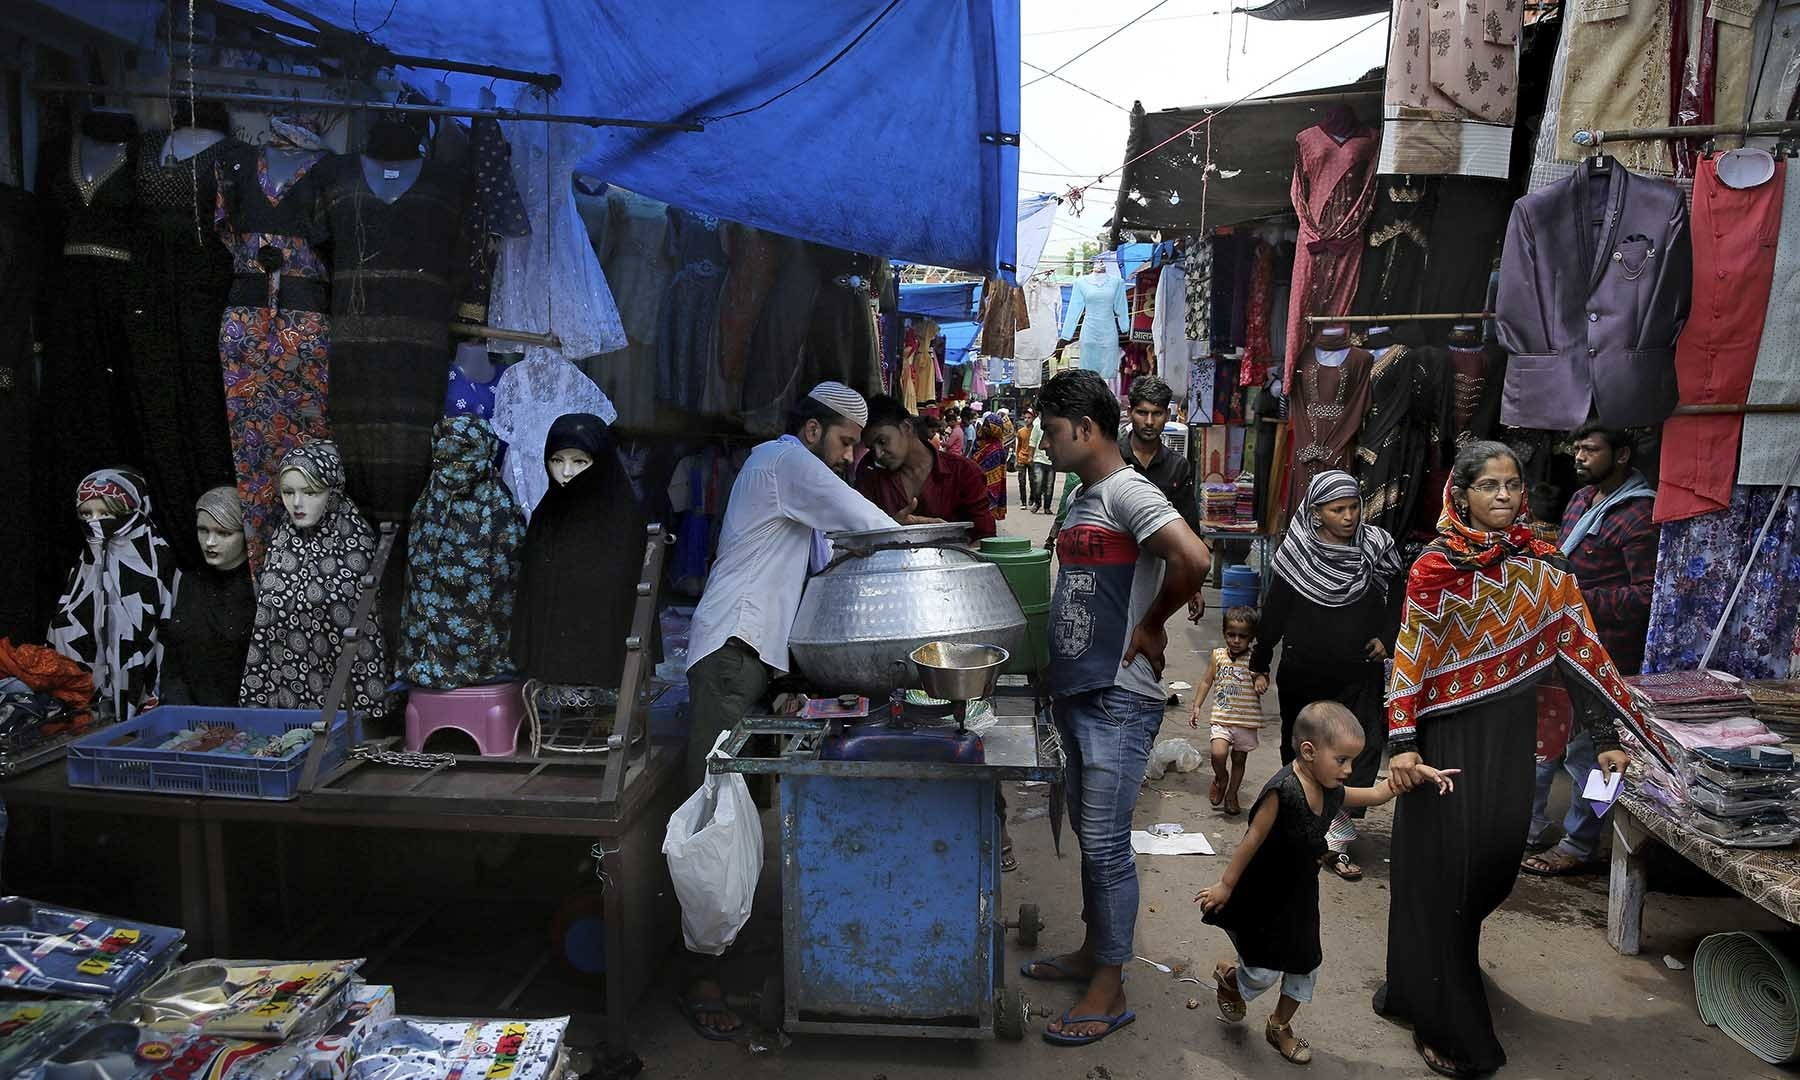 Indian Muslim women walk in a market place in New Delhi, India on Tuesday. — AP